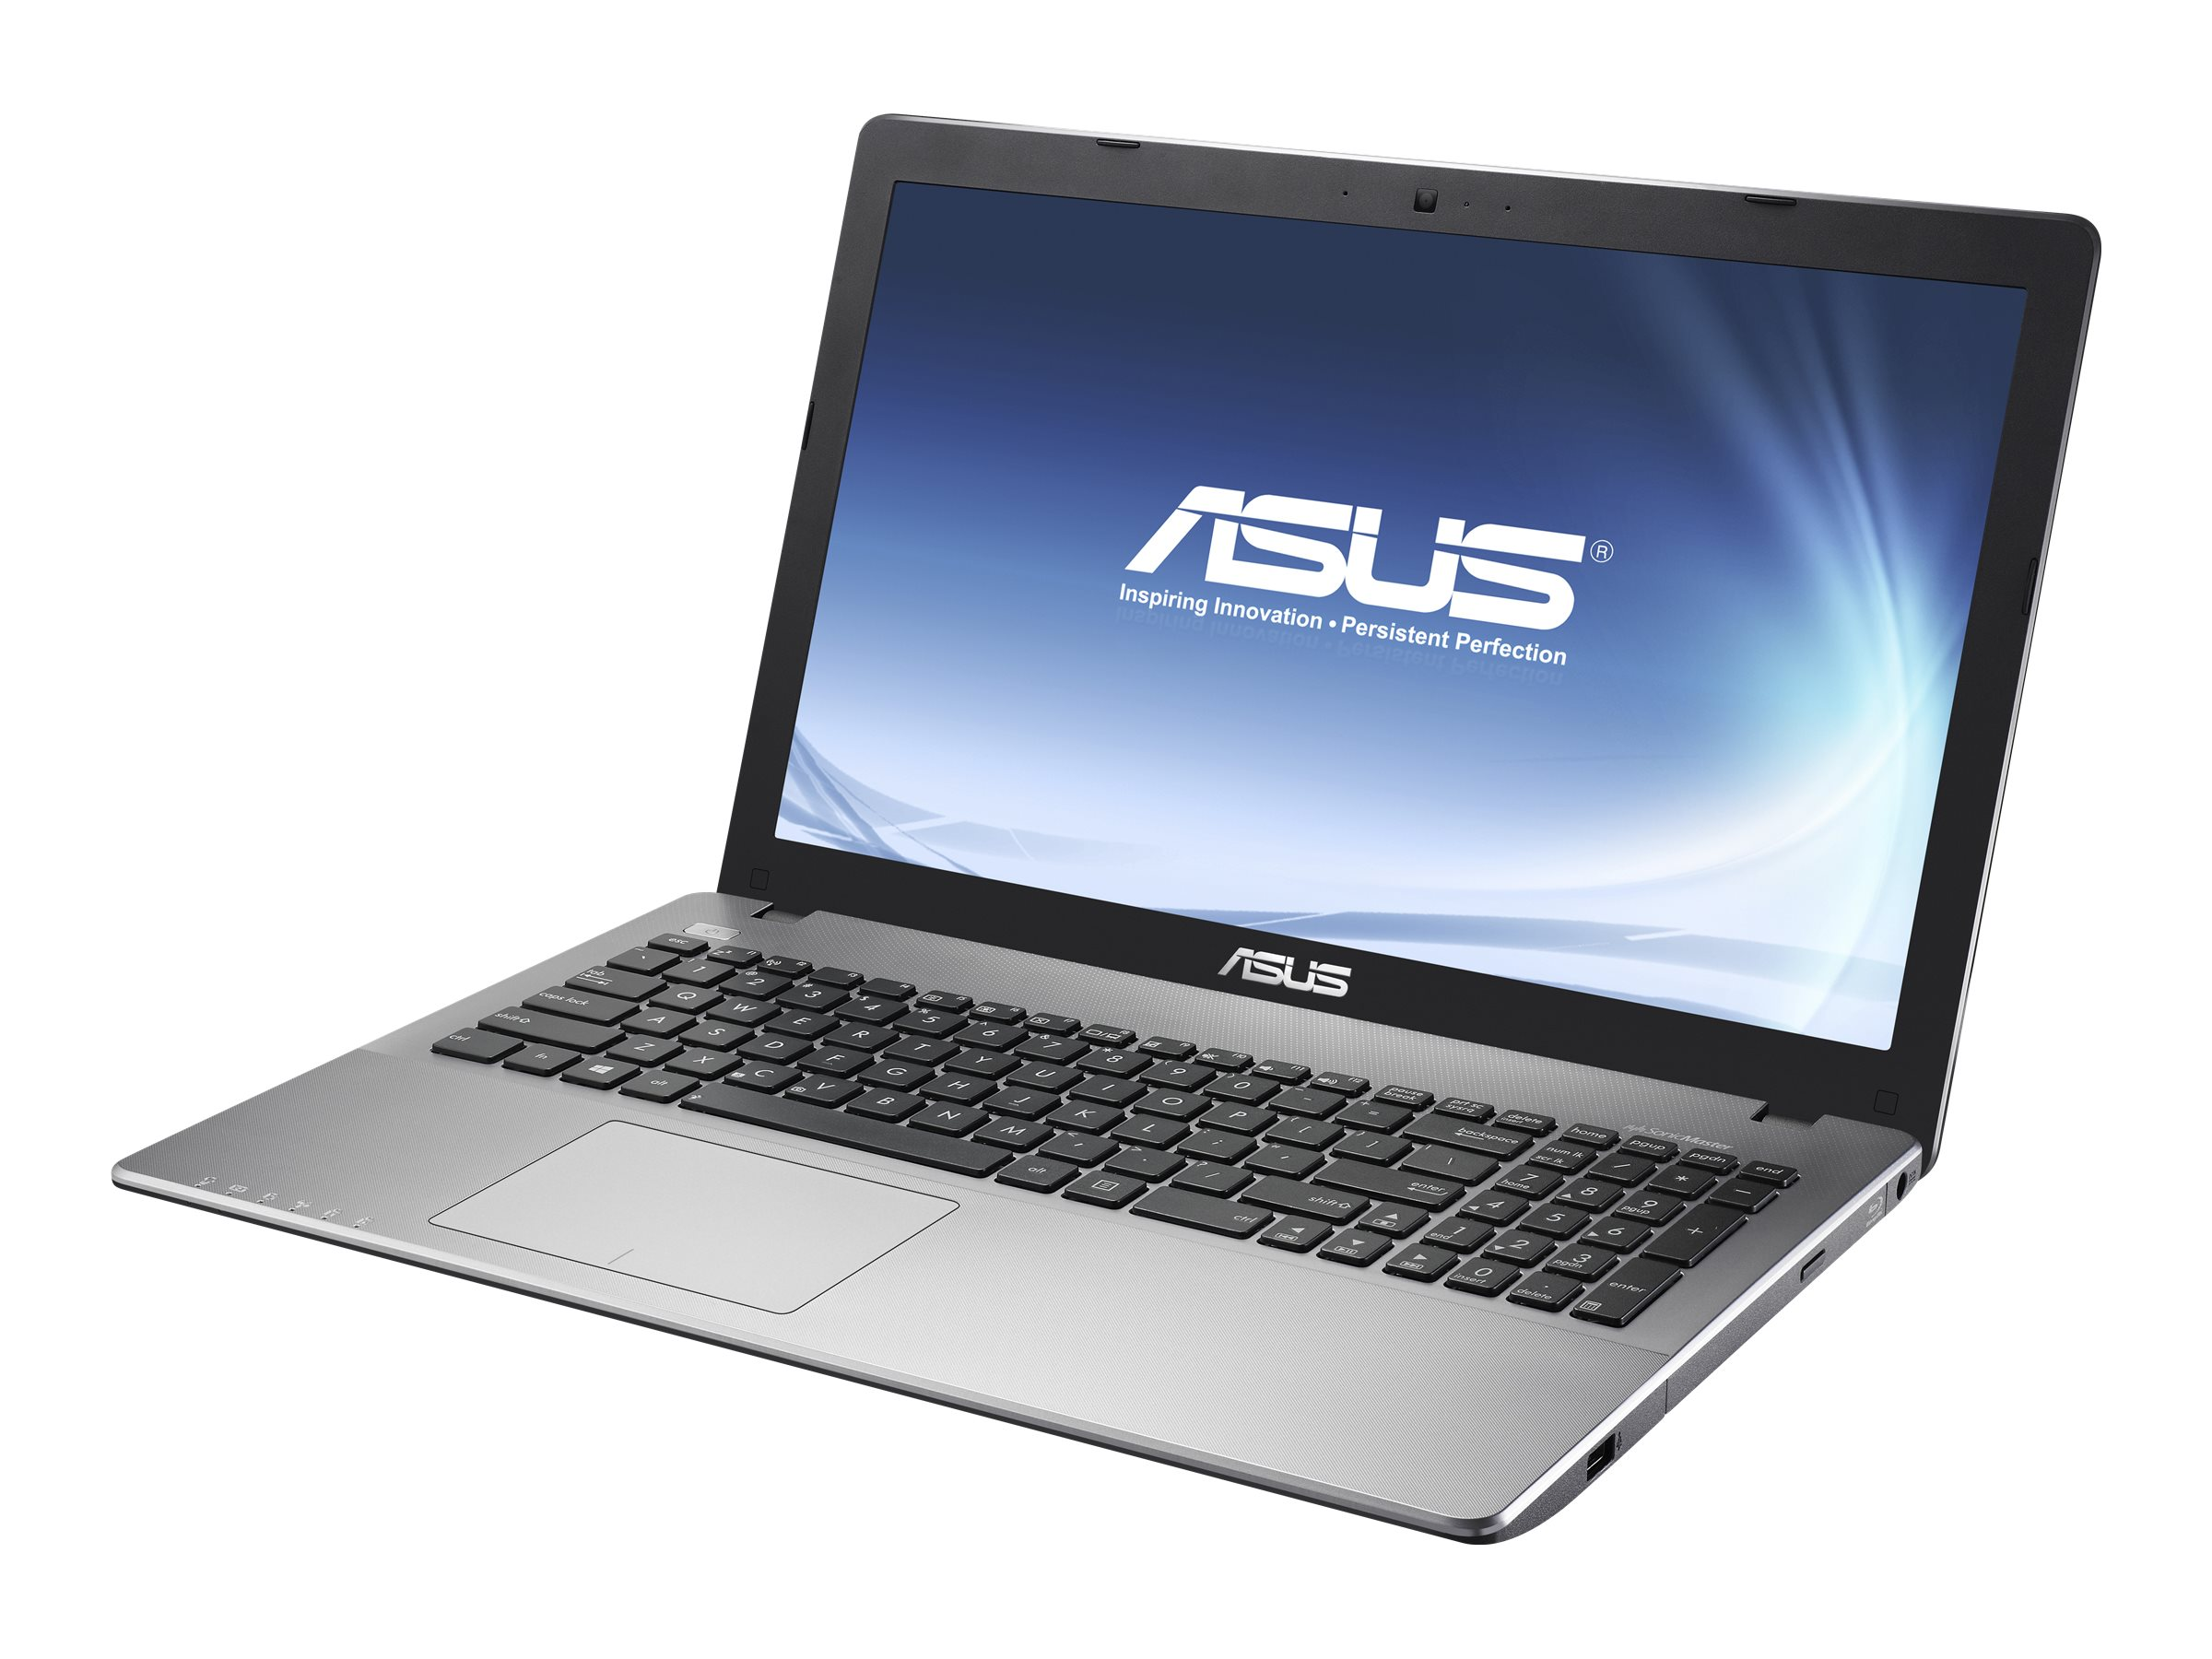 Asus X550ZE-DB10 AMD A10-7400P 2.5GHz 8GB 1TB DVD+RW 15.6 W8, X550ZE-DB10, 22429924, Notebooks